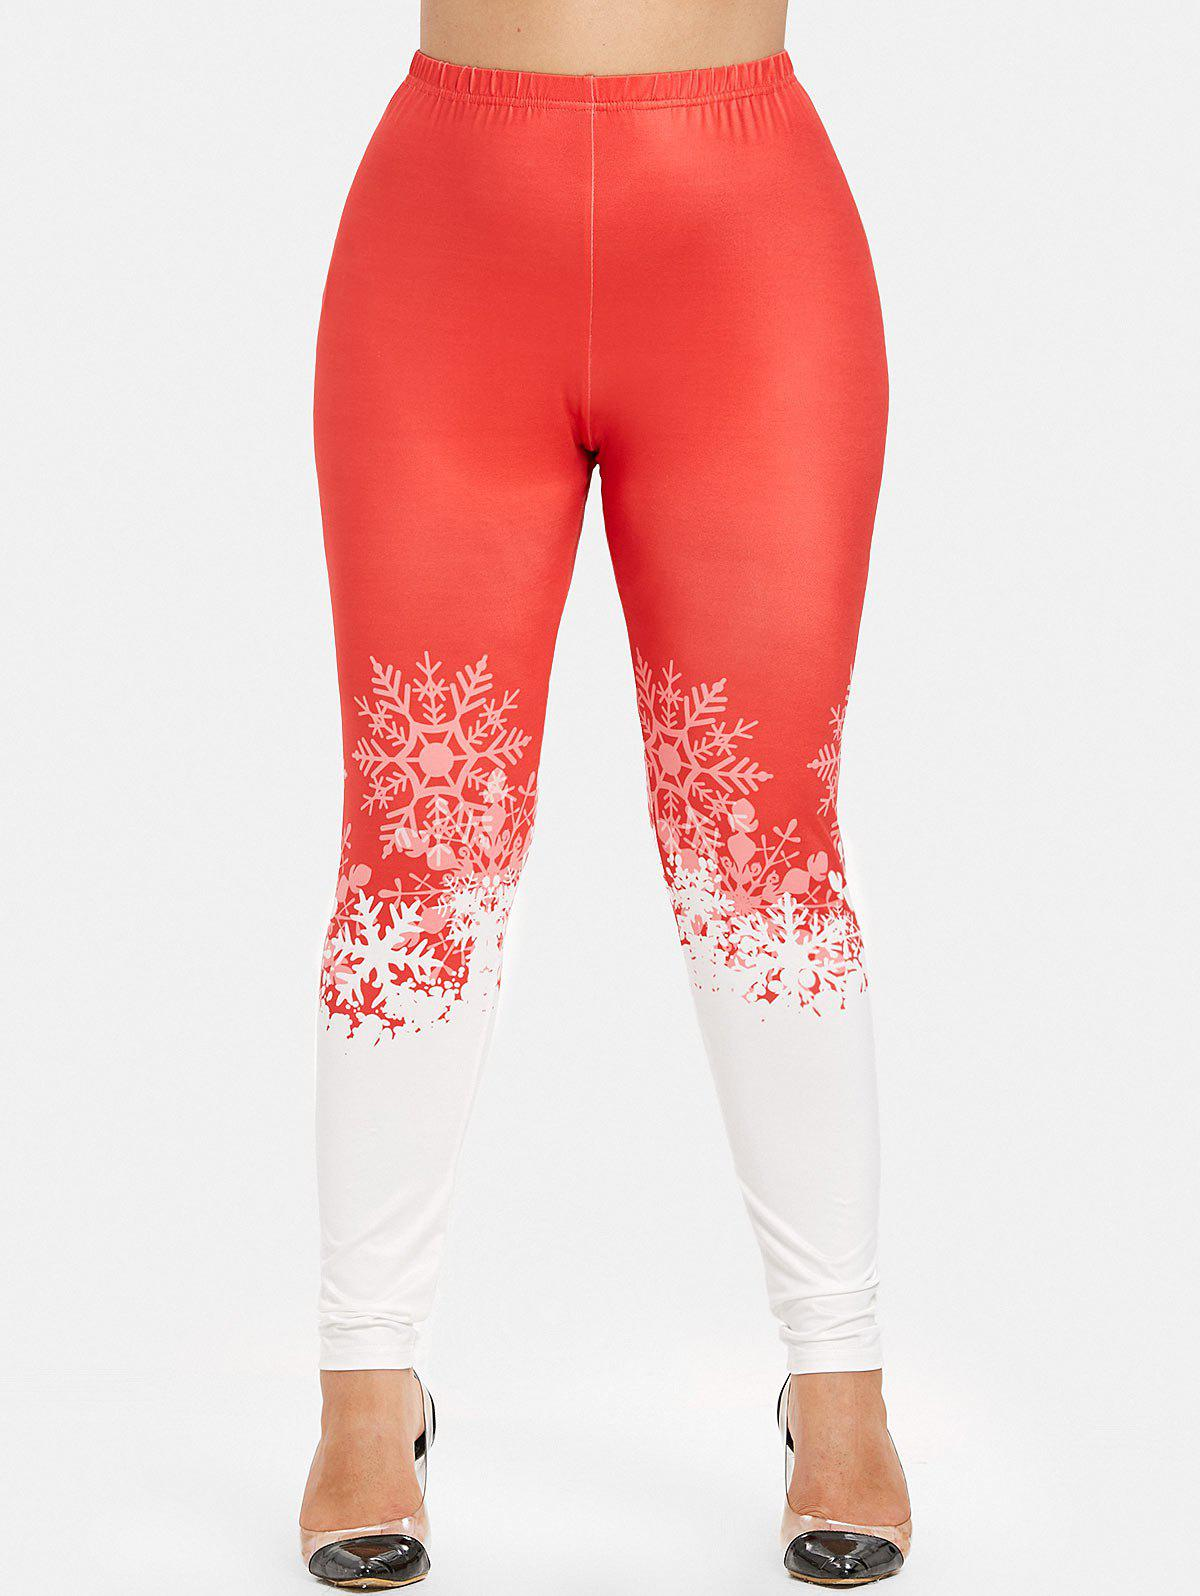 5103f26268bff 2019 Christmas Plus Size Skinny Leggings